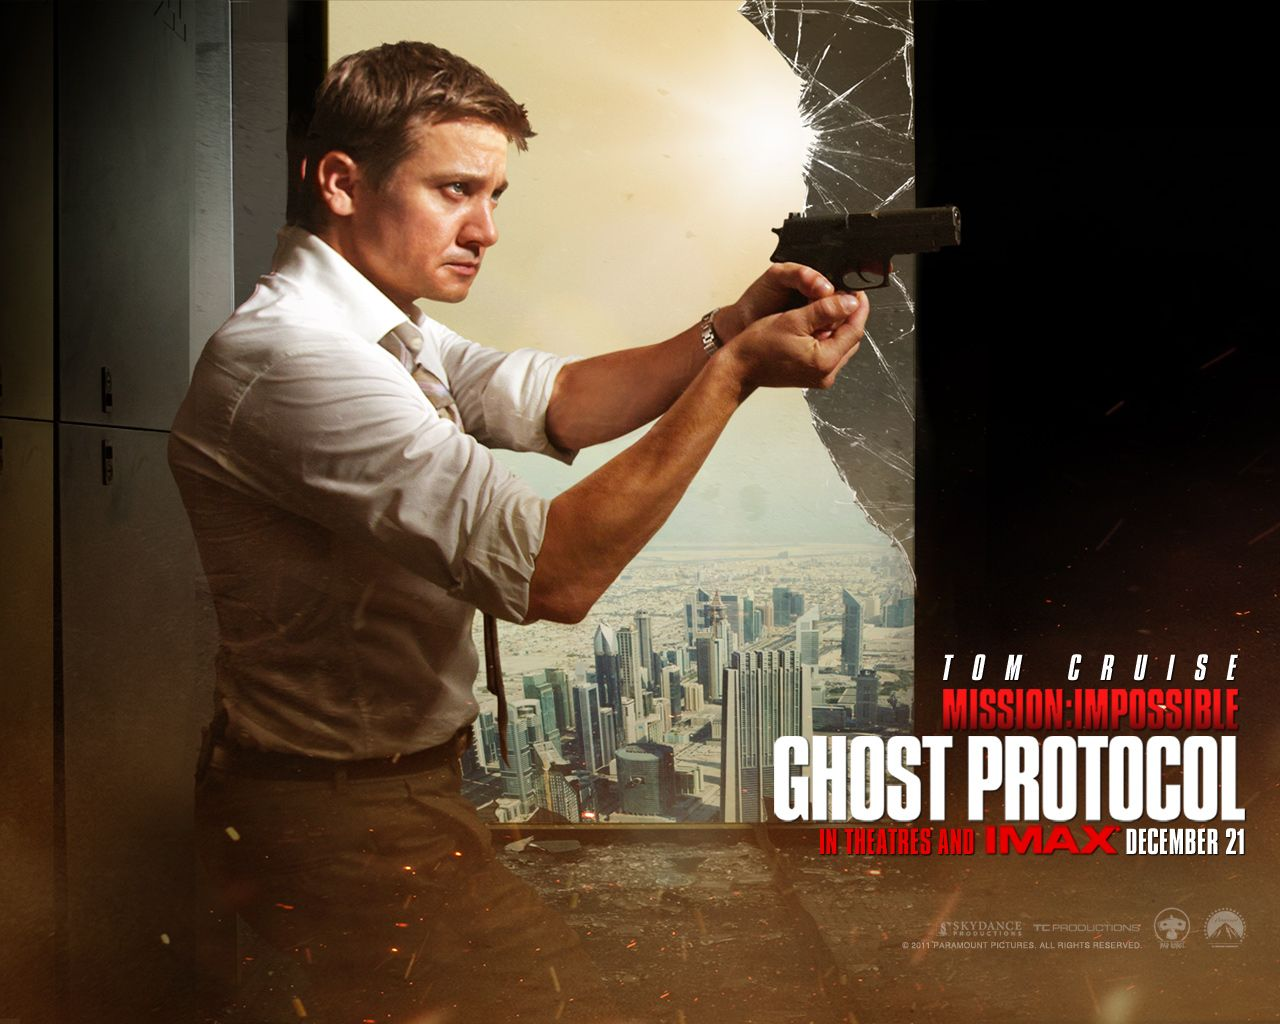 Upcoming movies mission impossible ghost protocol 2011